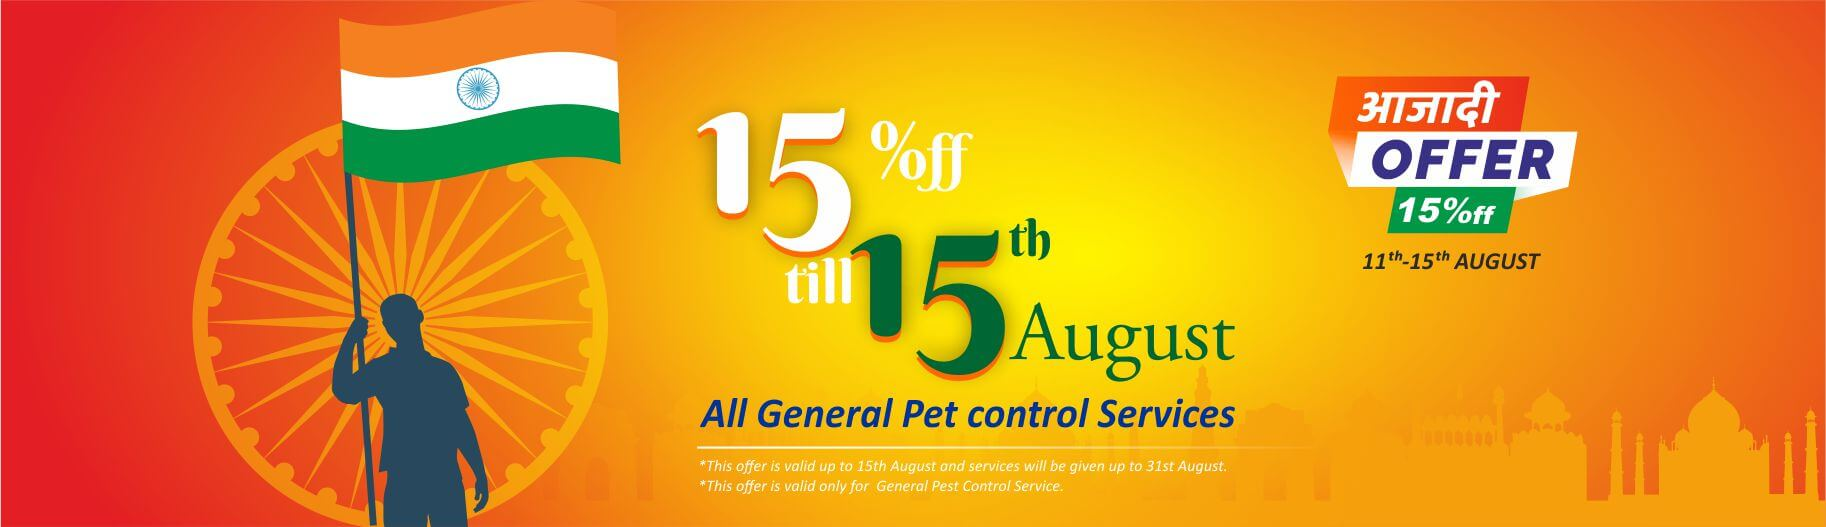 Pest control- Independence Day Offer for ALL